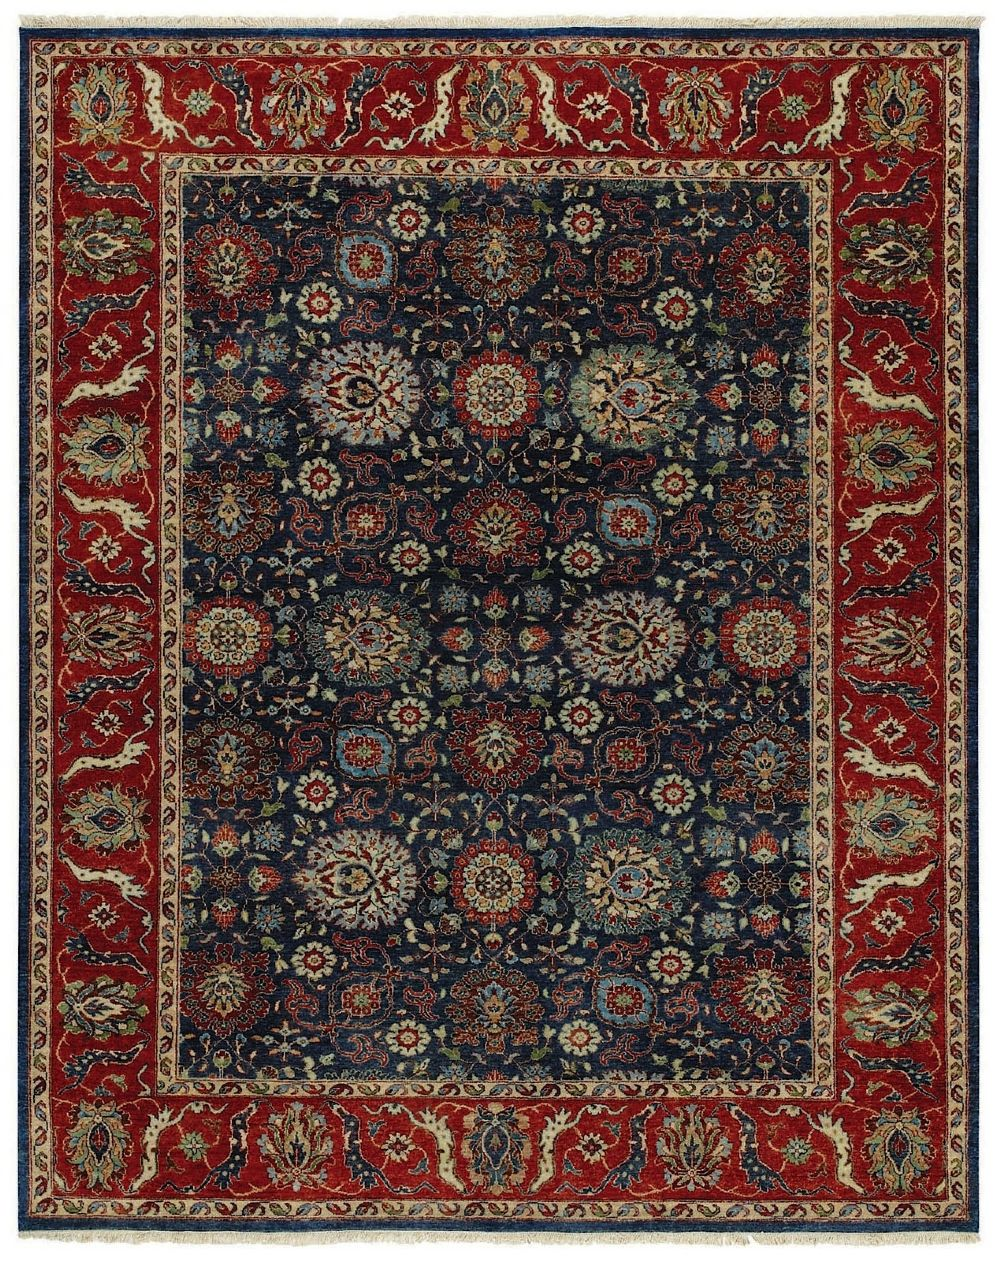 capel constantinople-bidjar traditional area rug collection